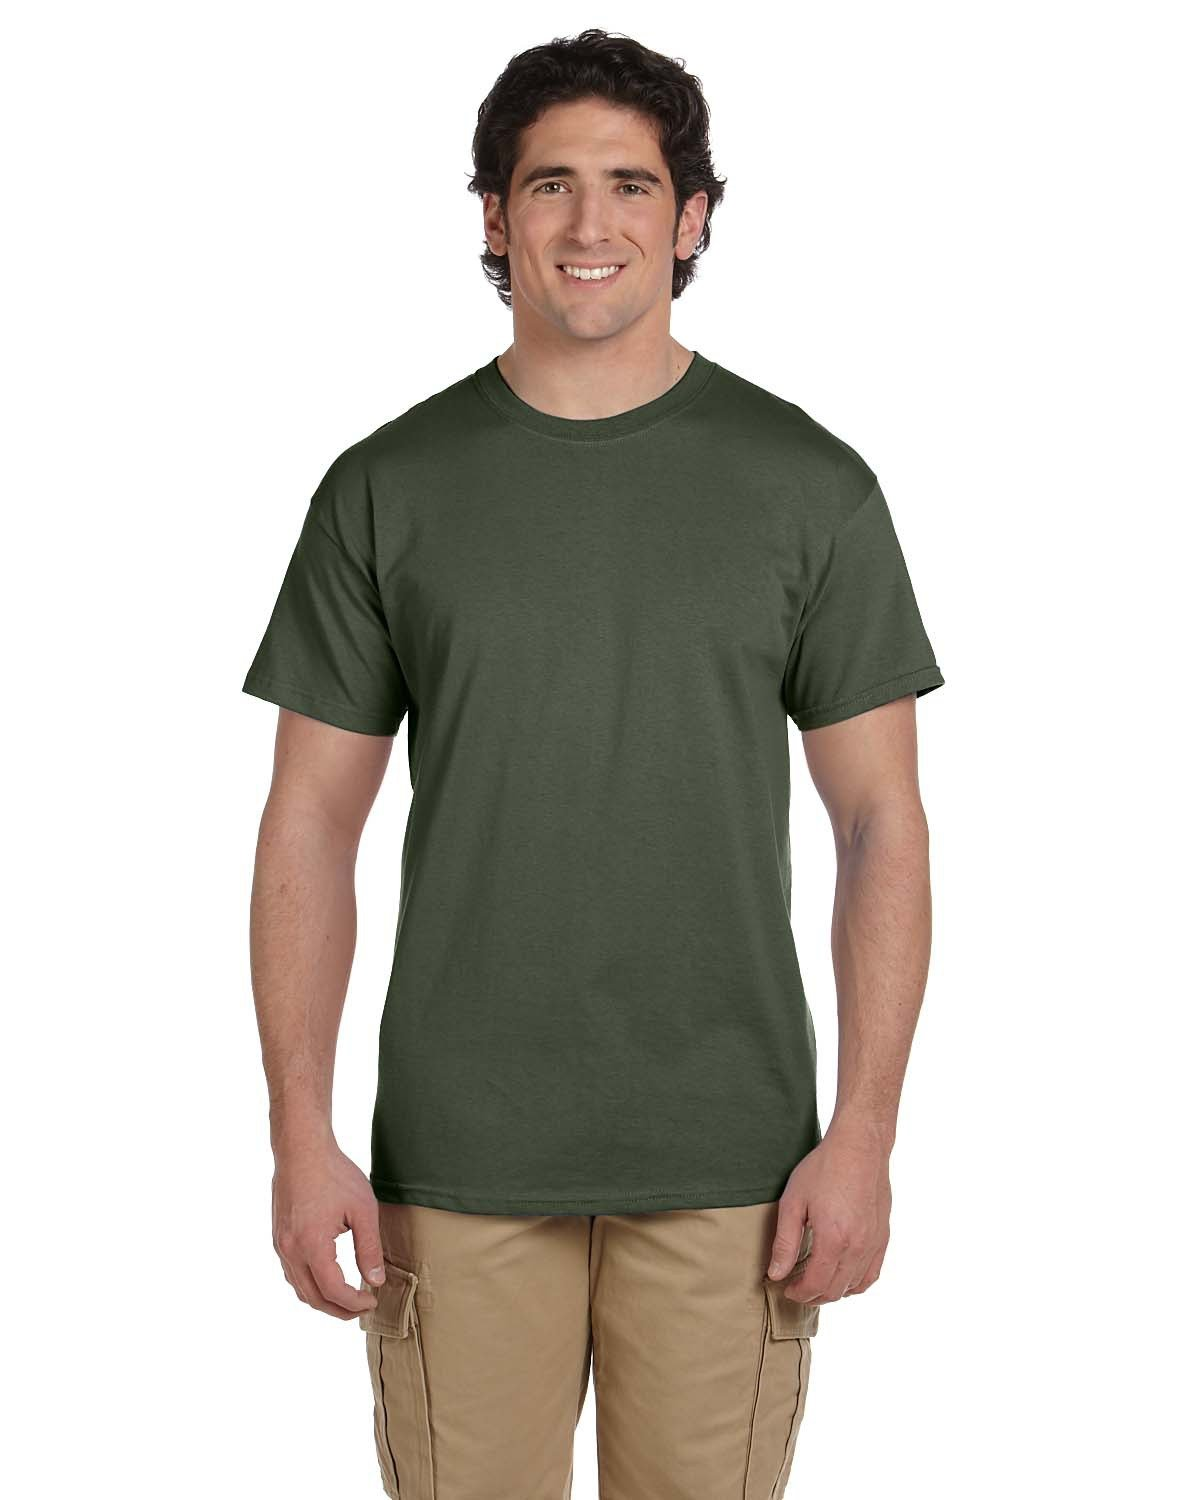 Fruit of the Loom Adult HD Cotton™ T-Shirt MILITARY GREEN